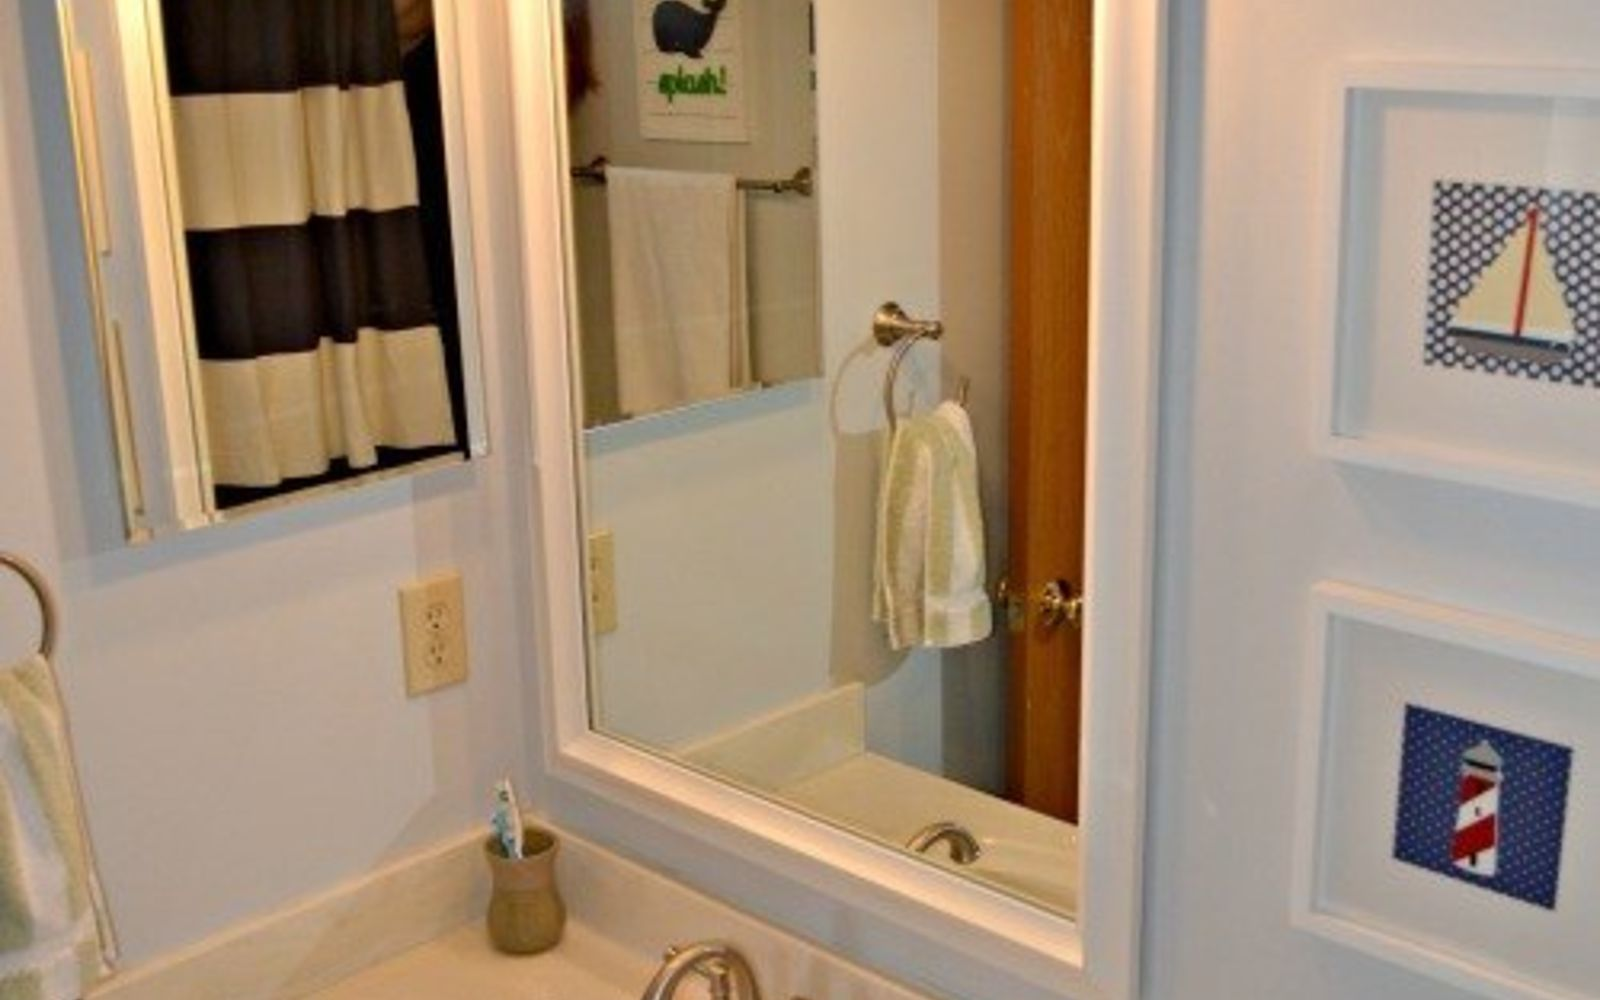 s 11 actually helpful tricks for decorating a small bathroom, bathroom ideas, Replace boring fixtures with interesting ones